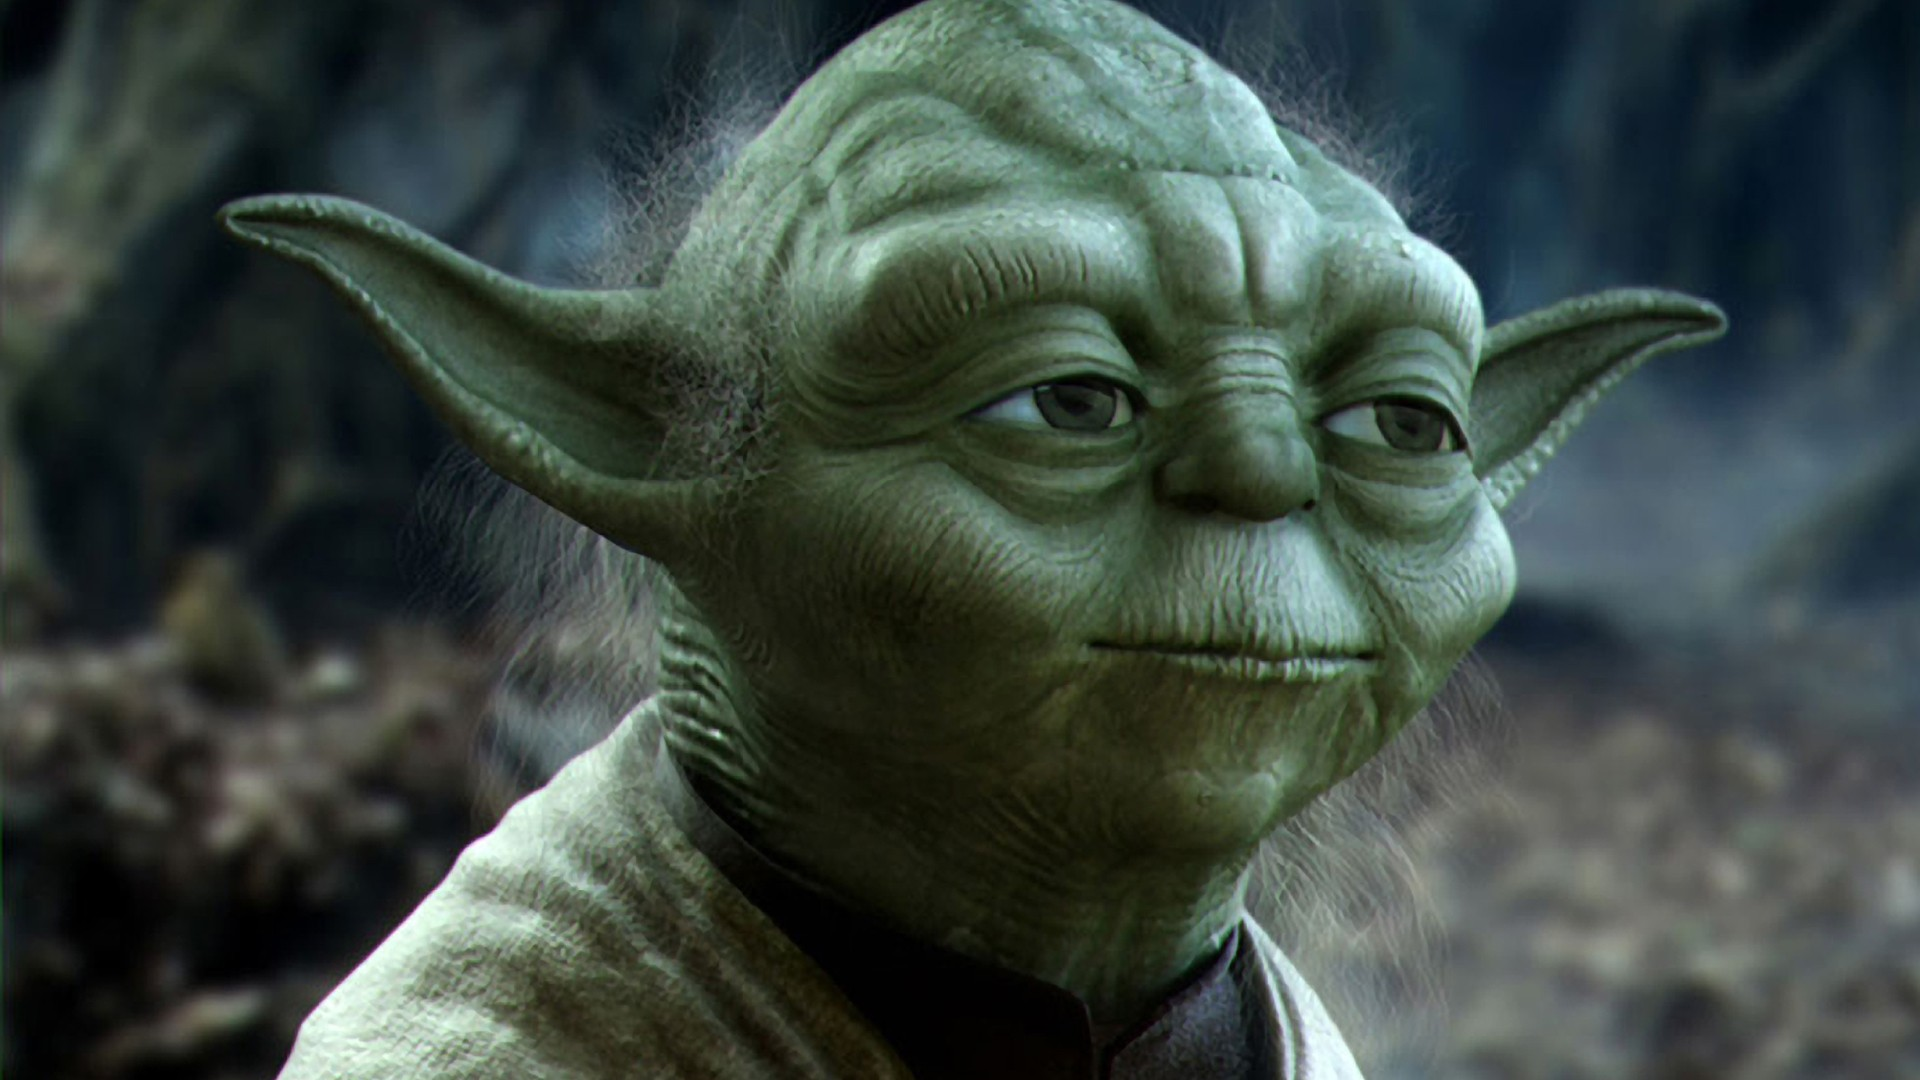 Star Wars Movies Forest Science Fiction Yoda 3d Render 3d Modeling Wallpaper 1920x1080 54579 Wallpaperup